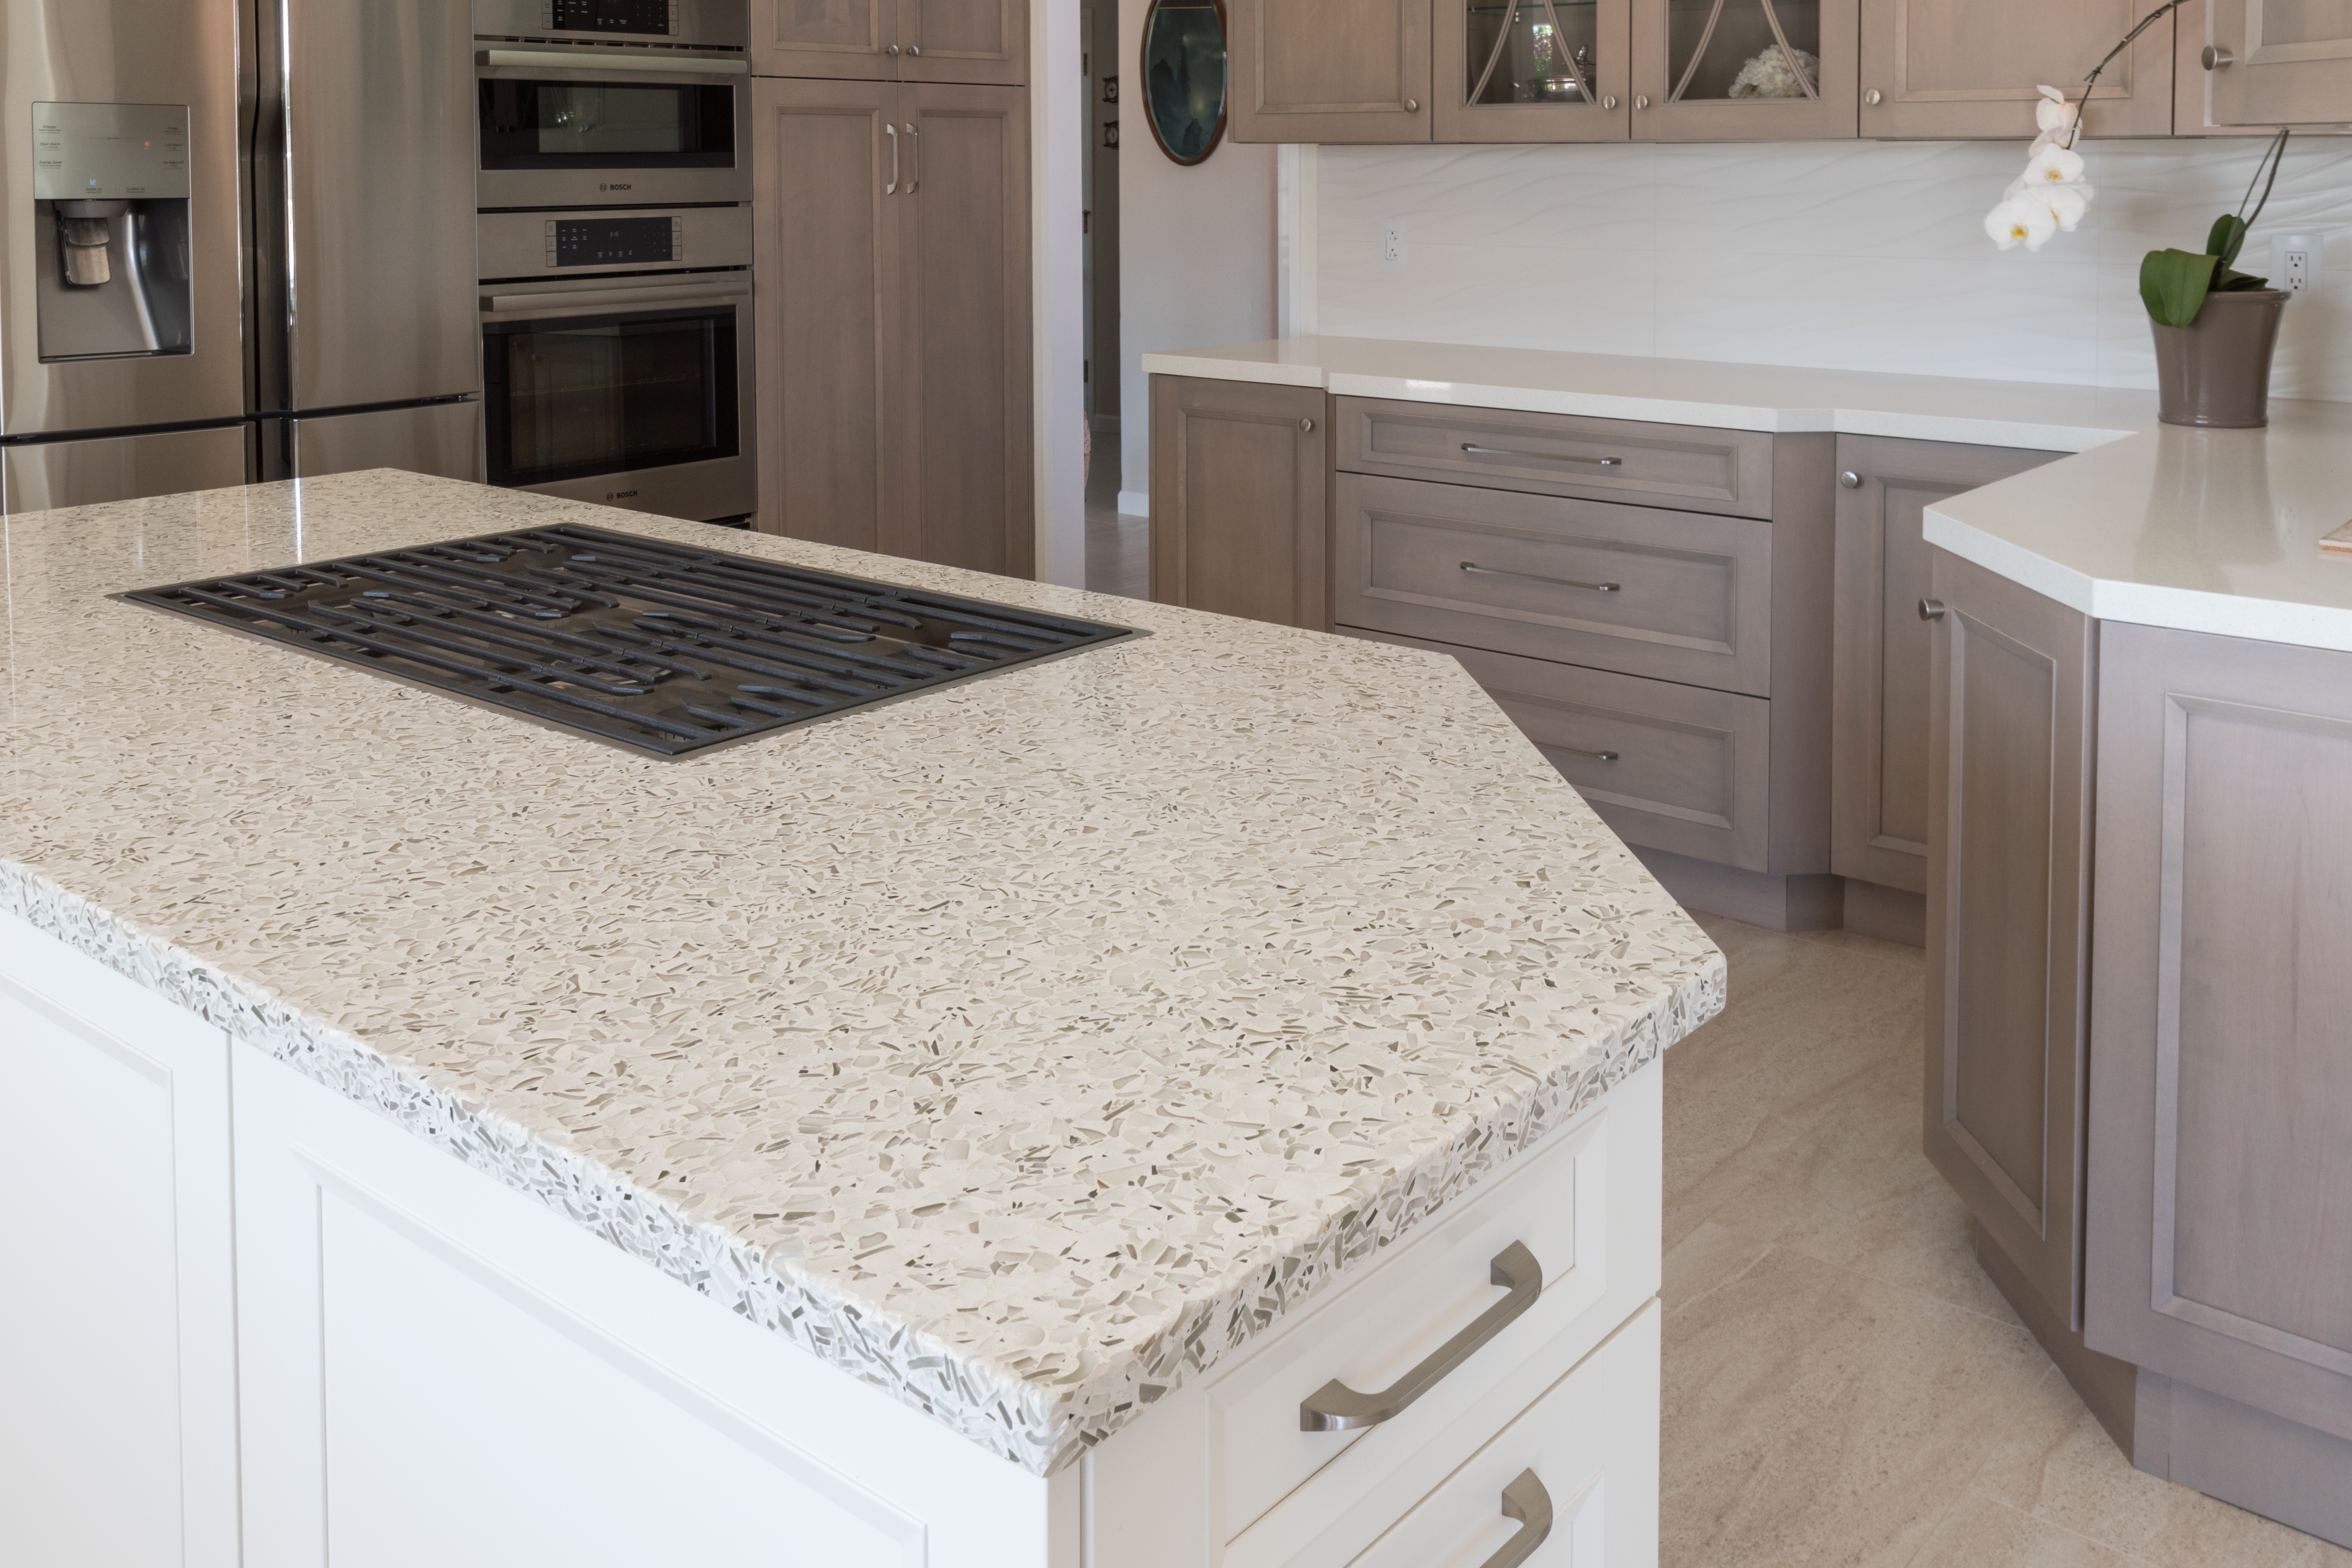 Vetrazzo-san-diego-martini-flint-kitchen-recycled-glass-countertops-pental-quartz-cashmere